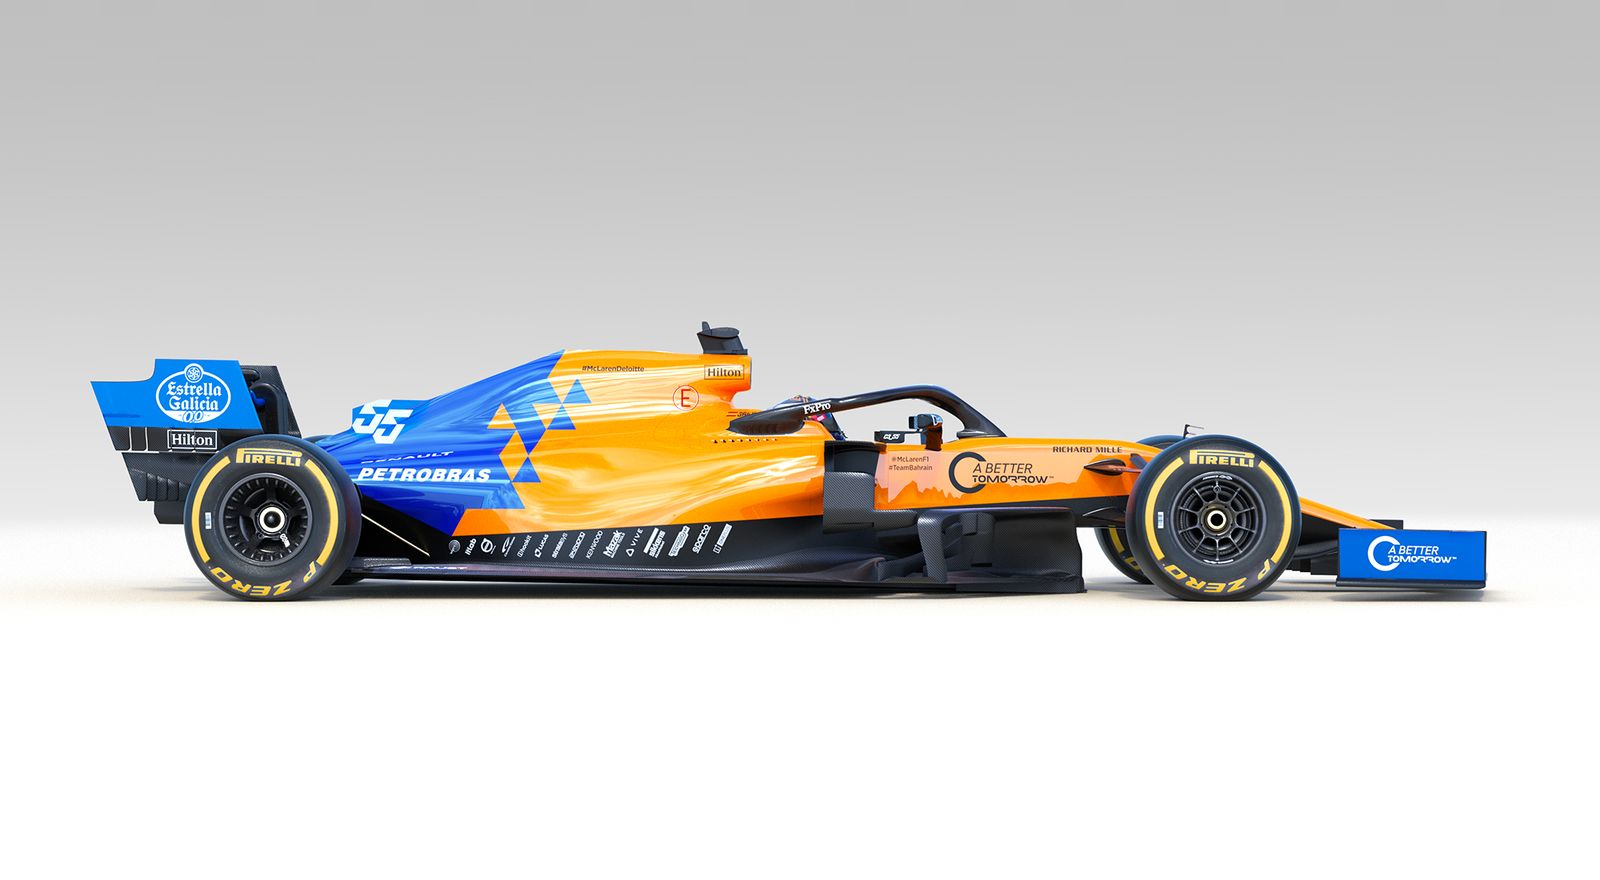 https://media-cdn.mclaren.com/media/images/galleries/MCL34_Website_2000x1100_c1.jpg